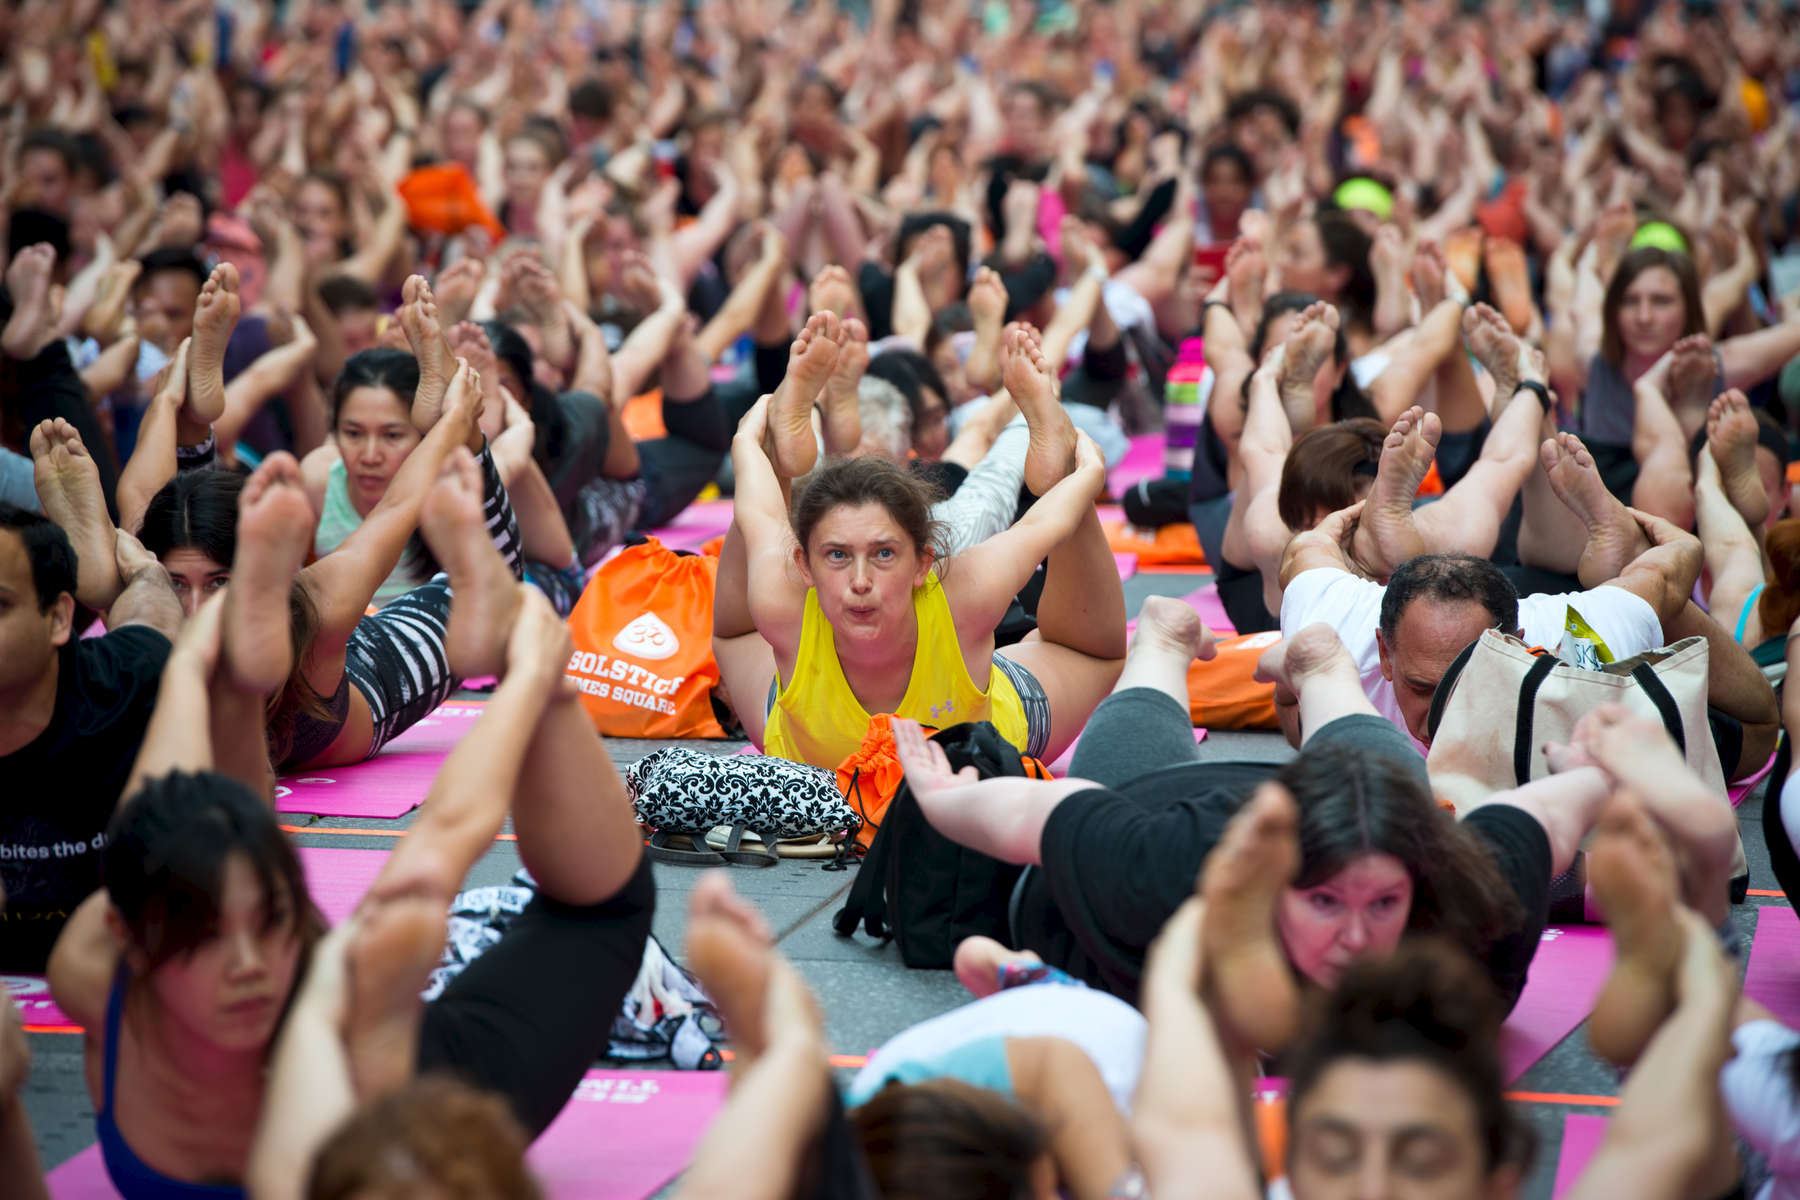 Thousands of yogis participate in yoga classes in Time Square to celebrate the summer solstice at the corner of West 44th Street and Broadway in Manhattan on Friday, June 20, 2016. The 14th annual Solstice in Times Square: Mind Over Madness Yoga - is a free, day-long outdoor yoga event hosted by the Times Square Alliance.